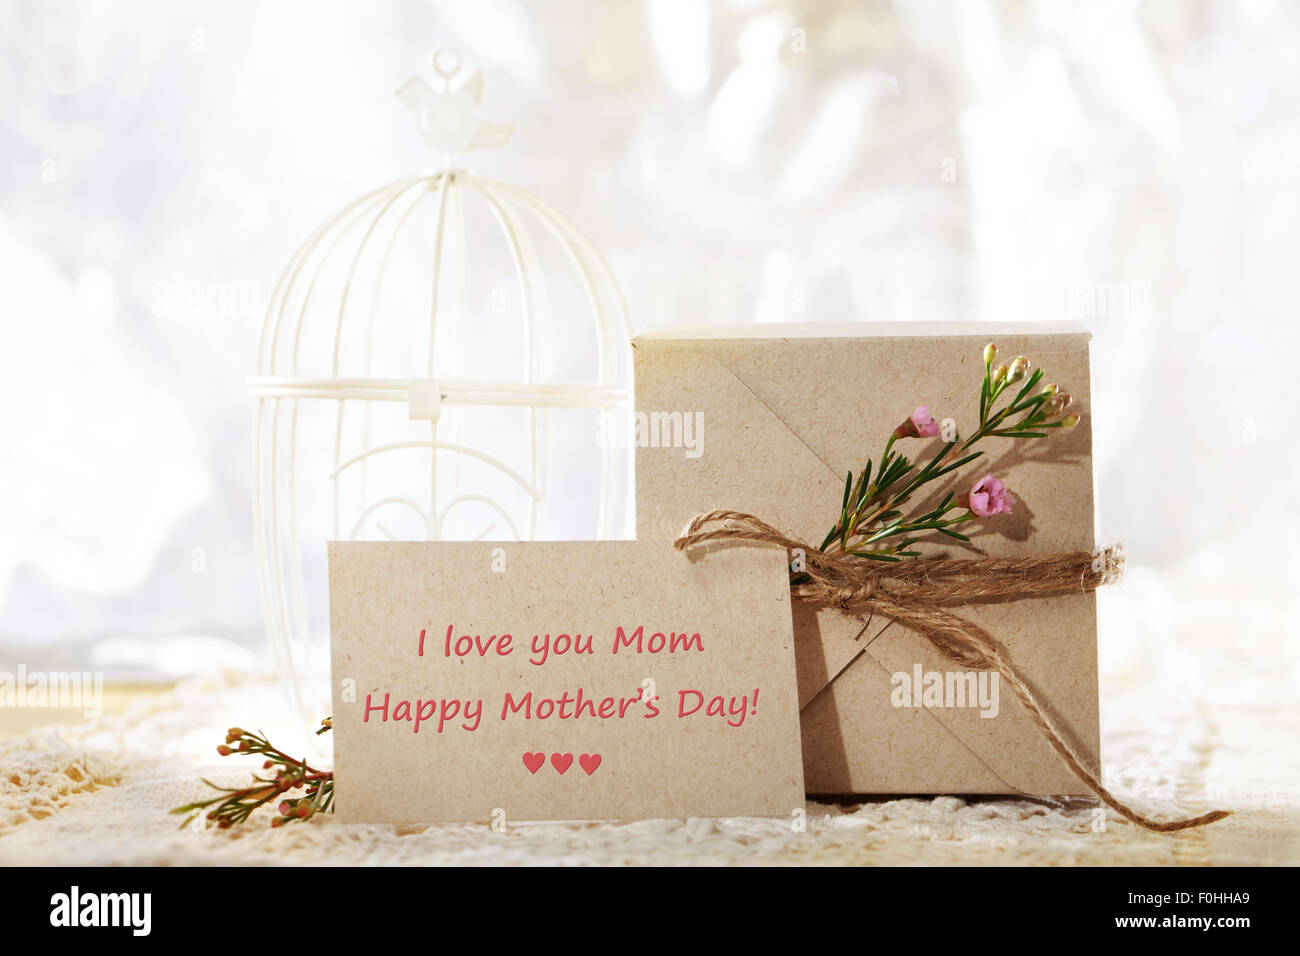 Happy Mothers Day, fait main card stock présent fort et carte de souhaits Photo Stock